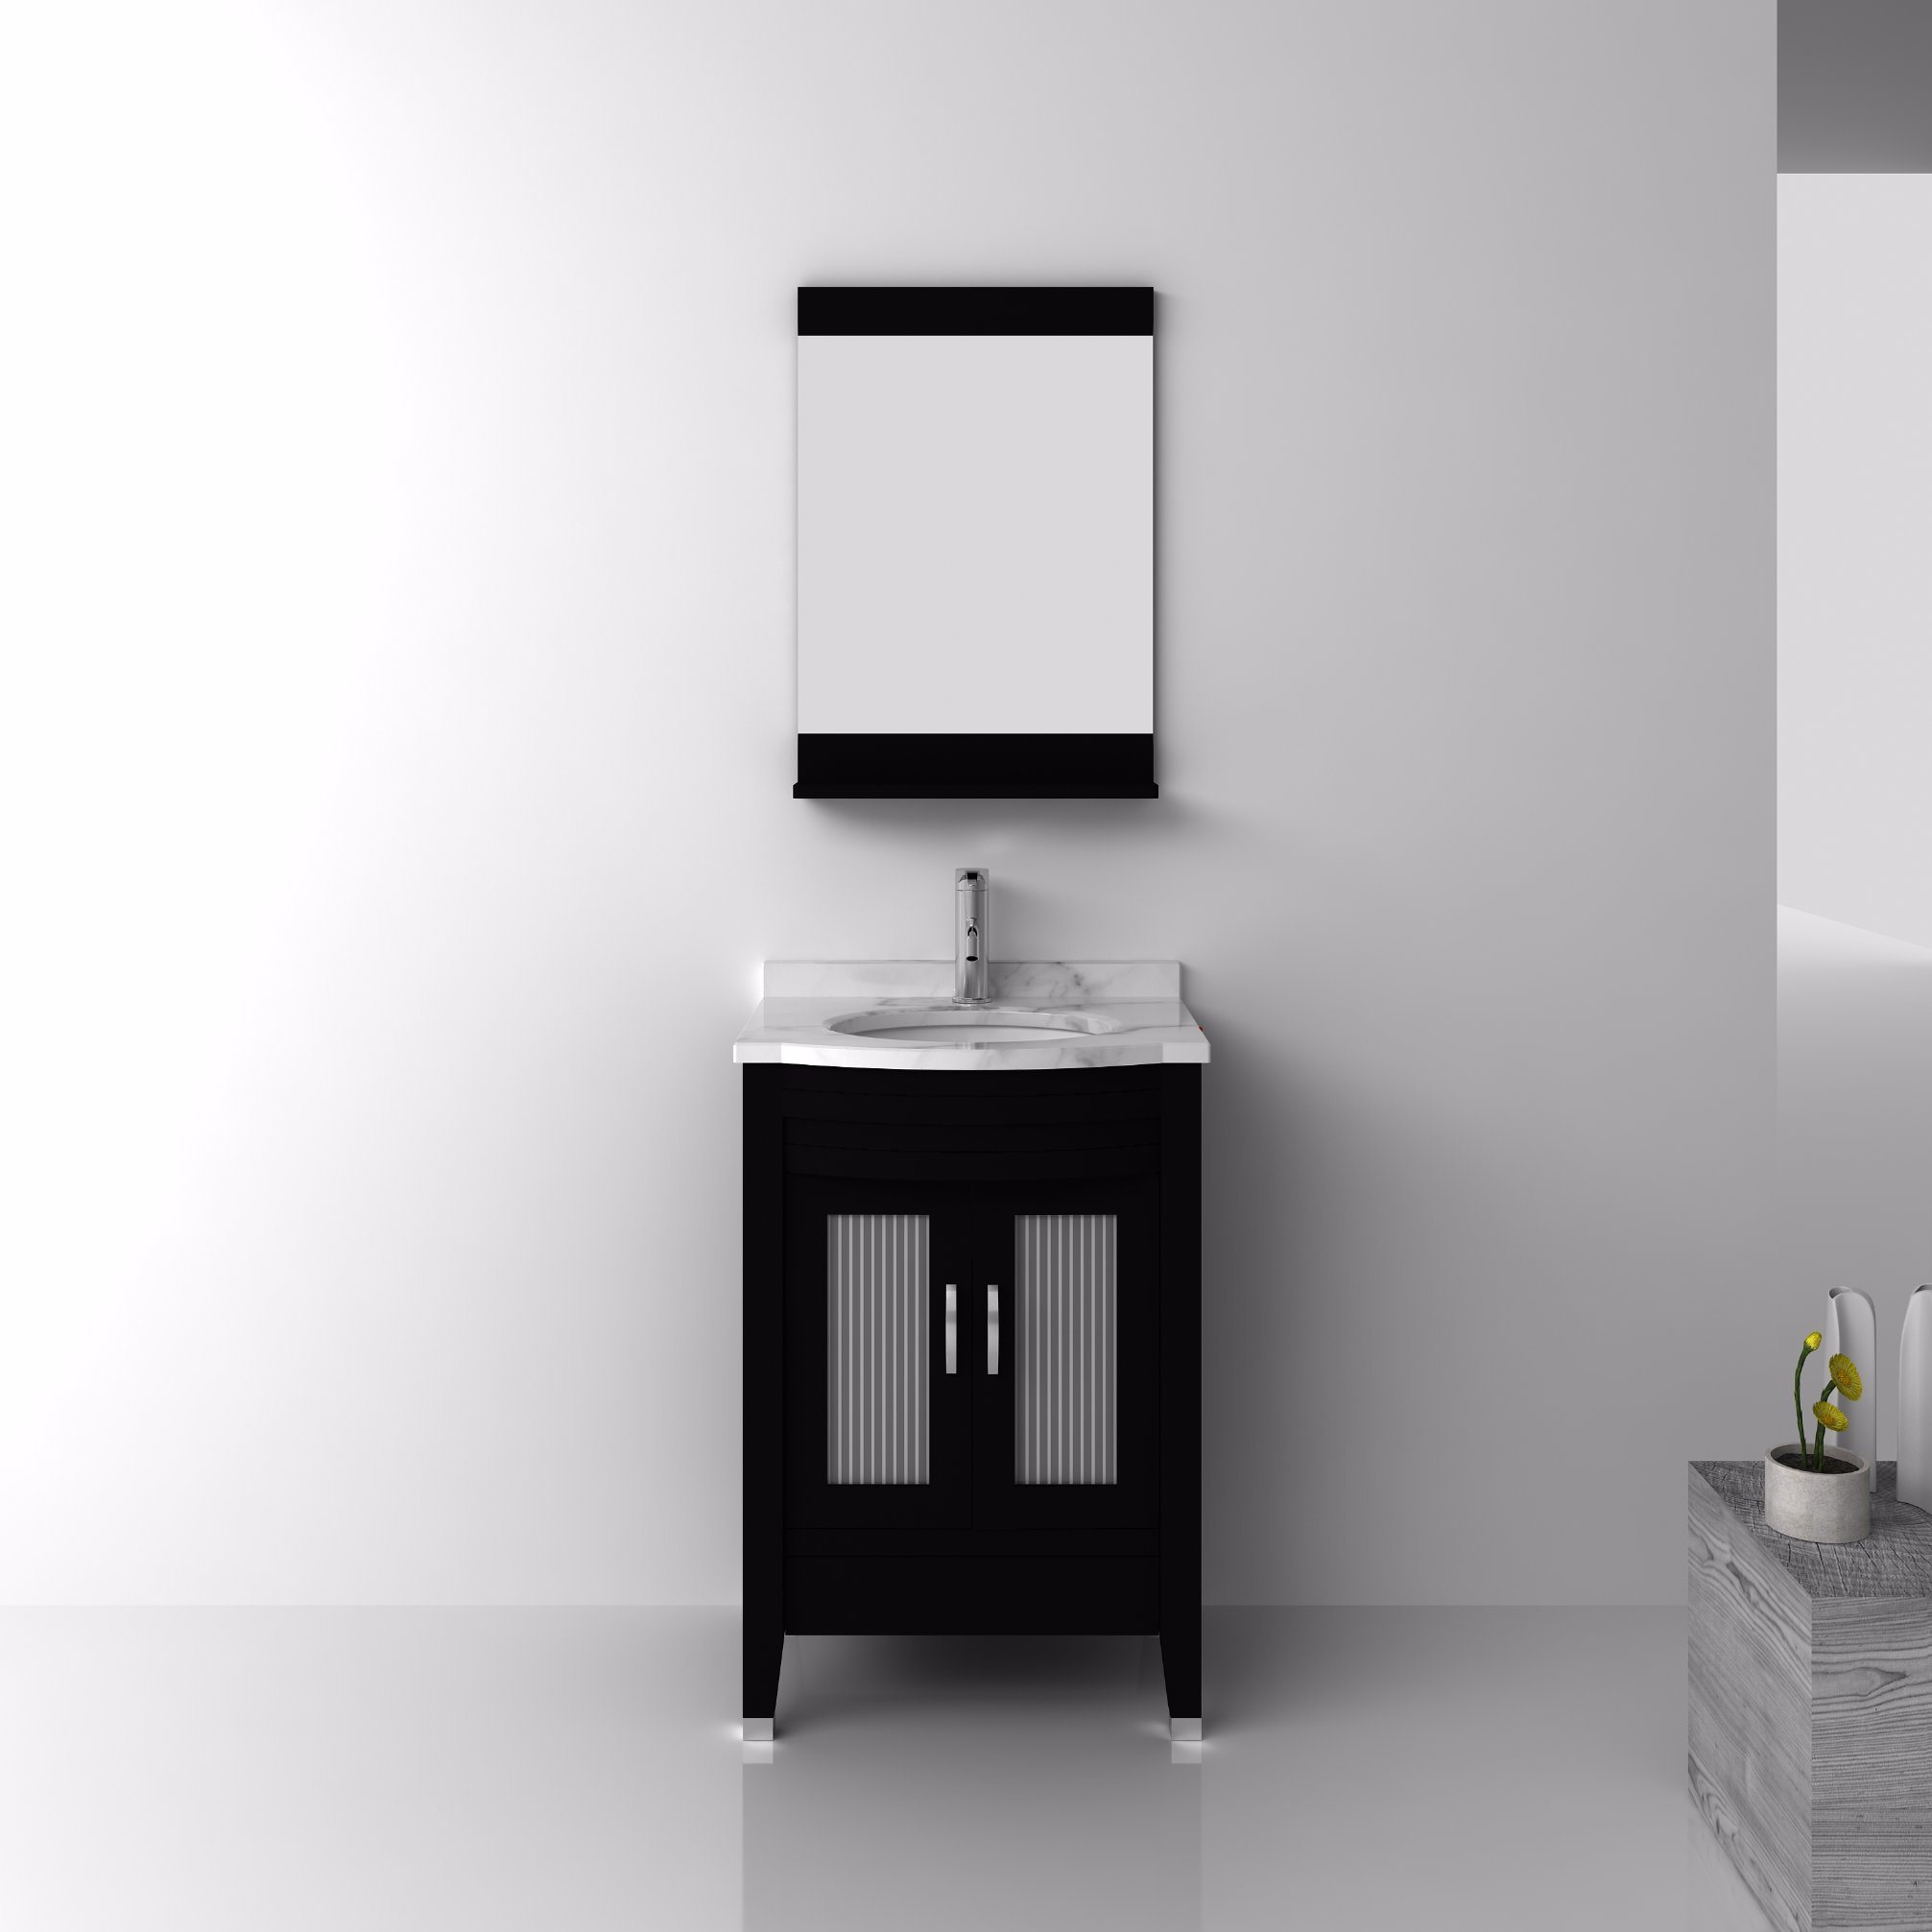 China Solid Wood Bathroom Cabinet with Ceramic Basin and Mirror ...